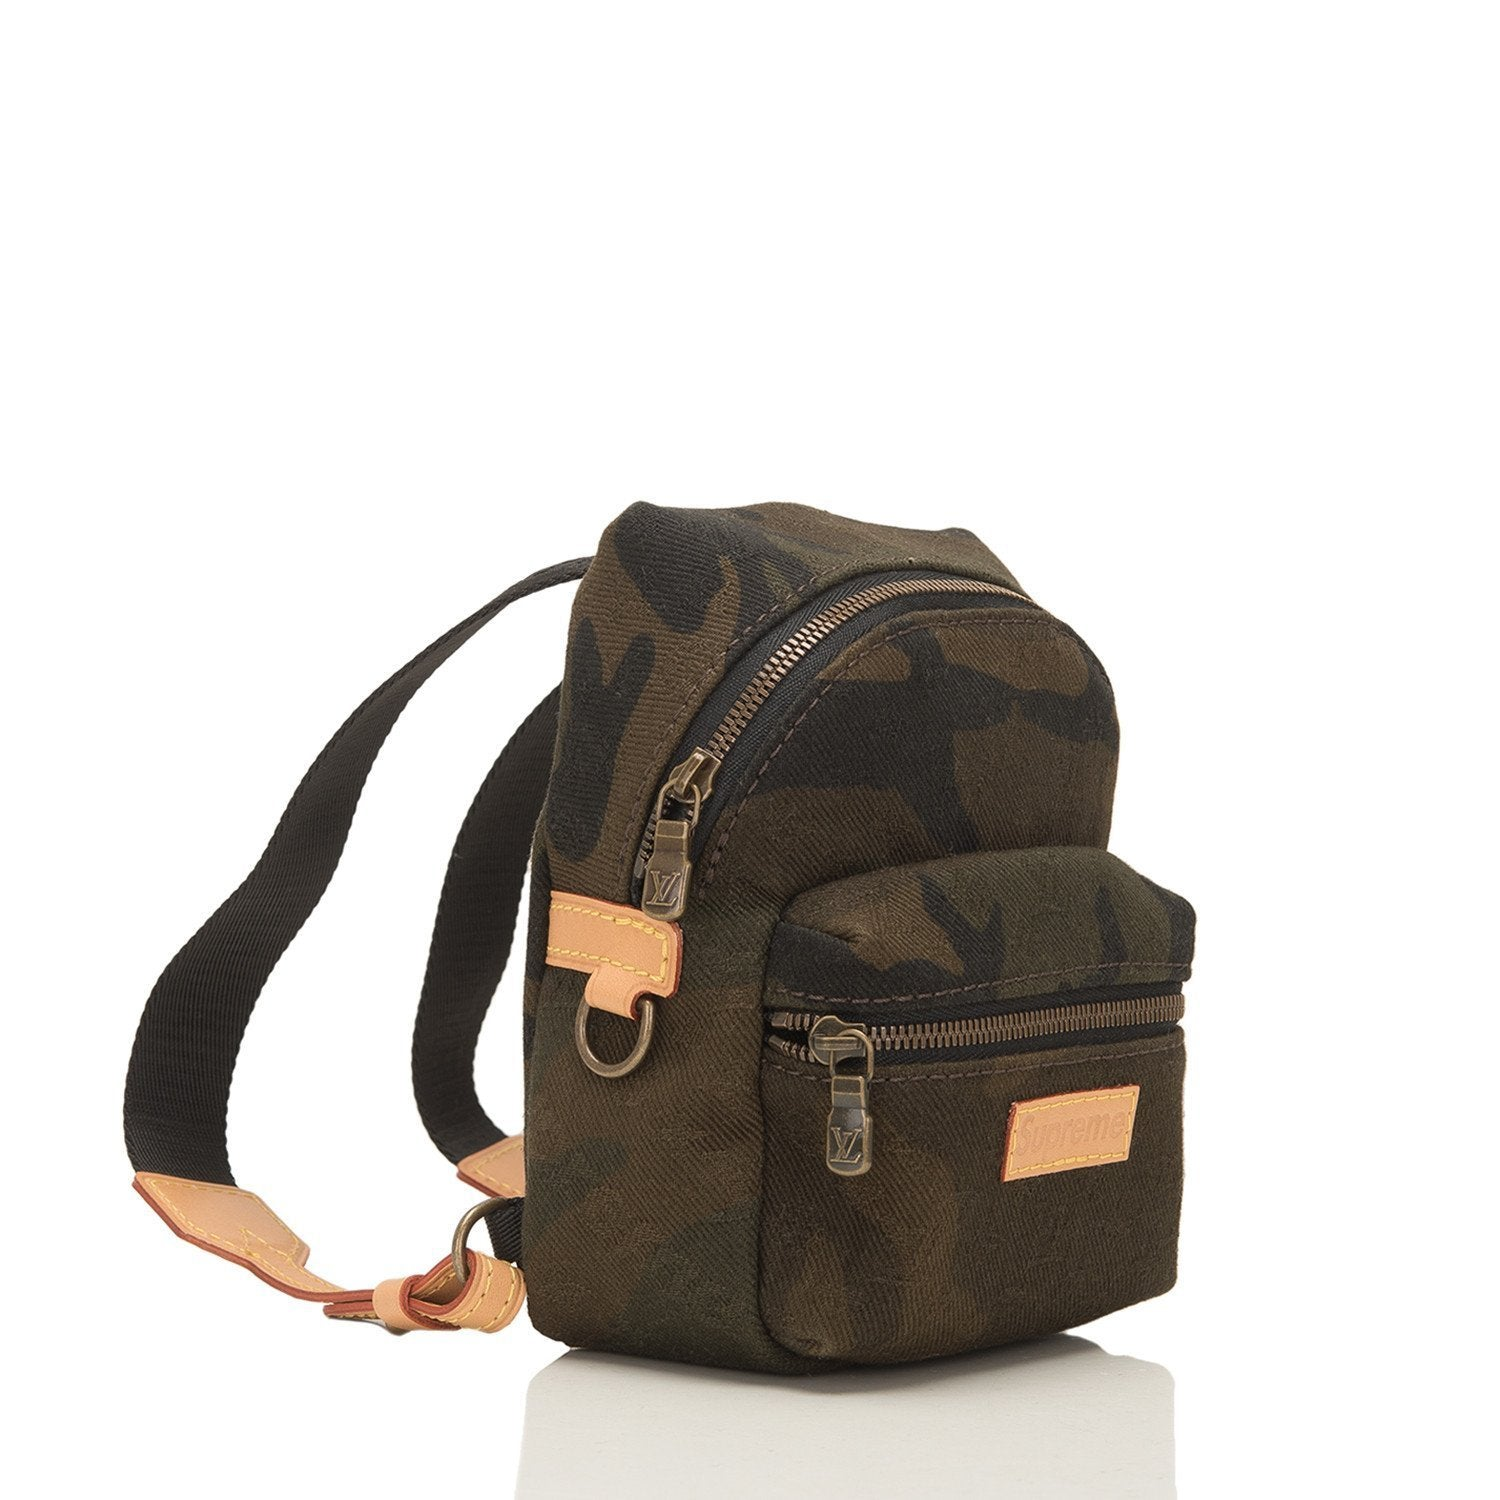 Louis Vuitton X Supreme Apollo Nano Backpack Handbags